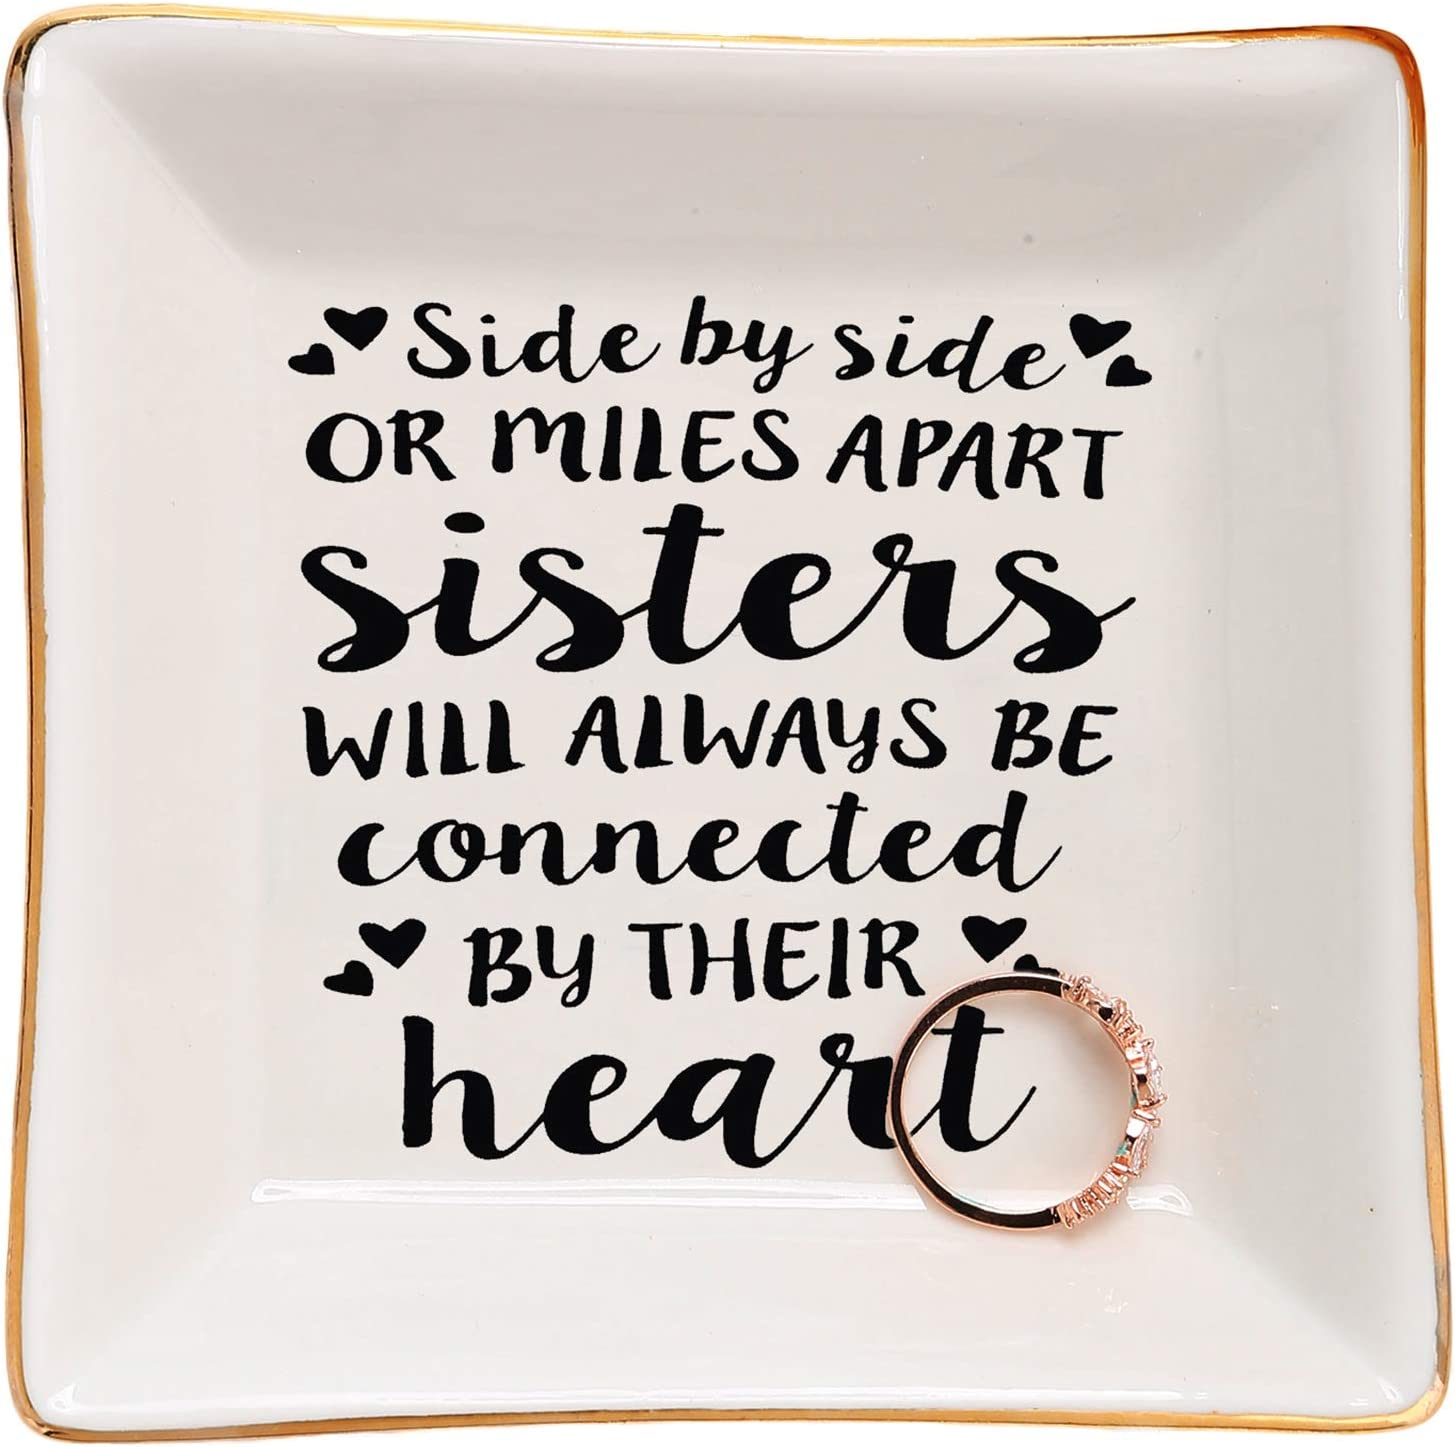 Forever My Friend Decorative Ring Dish Ceramic Square and Heart Shape Gifts for Sister Birthday Sister Birthday Gifts from Sister- Sister Gift Graduation Gifts for Her- Always My Sister